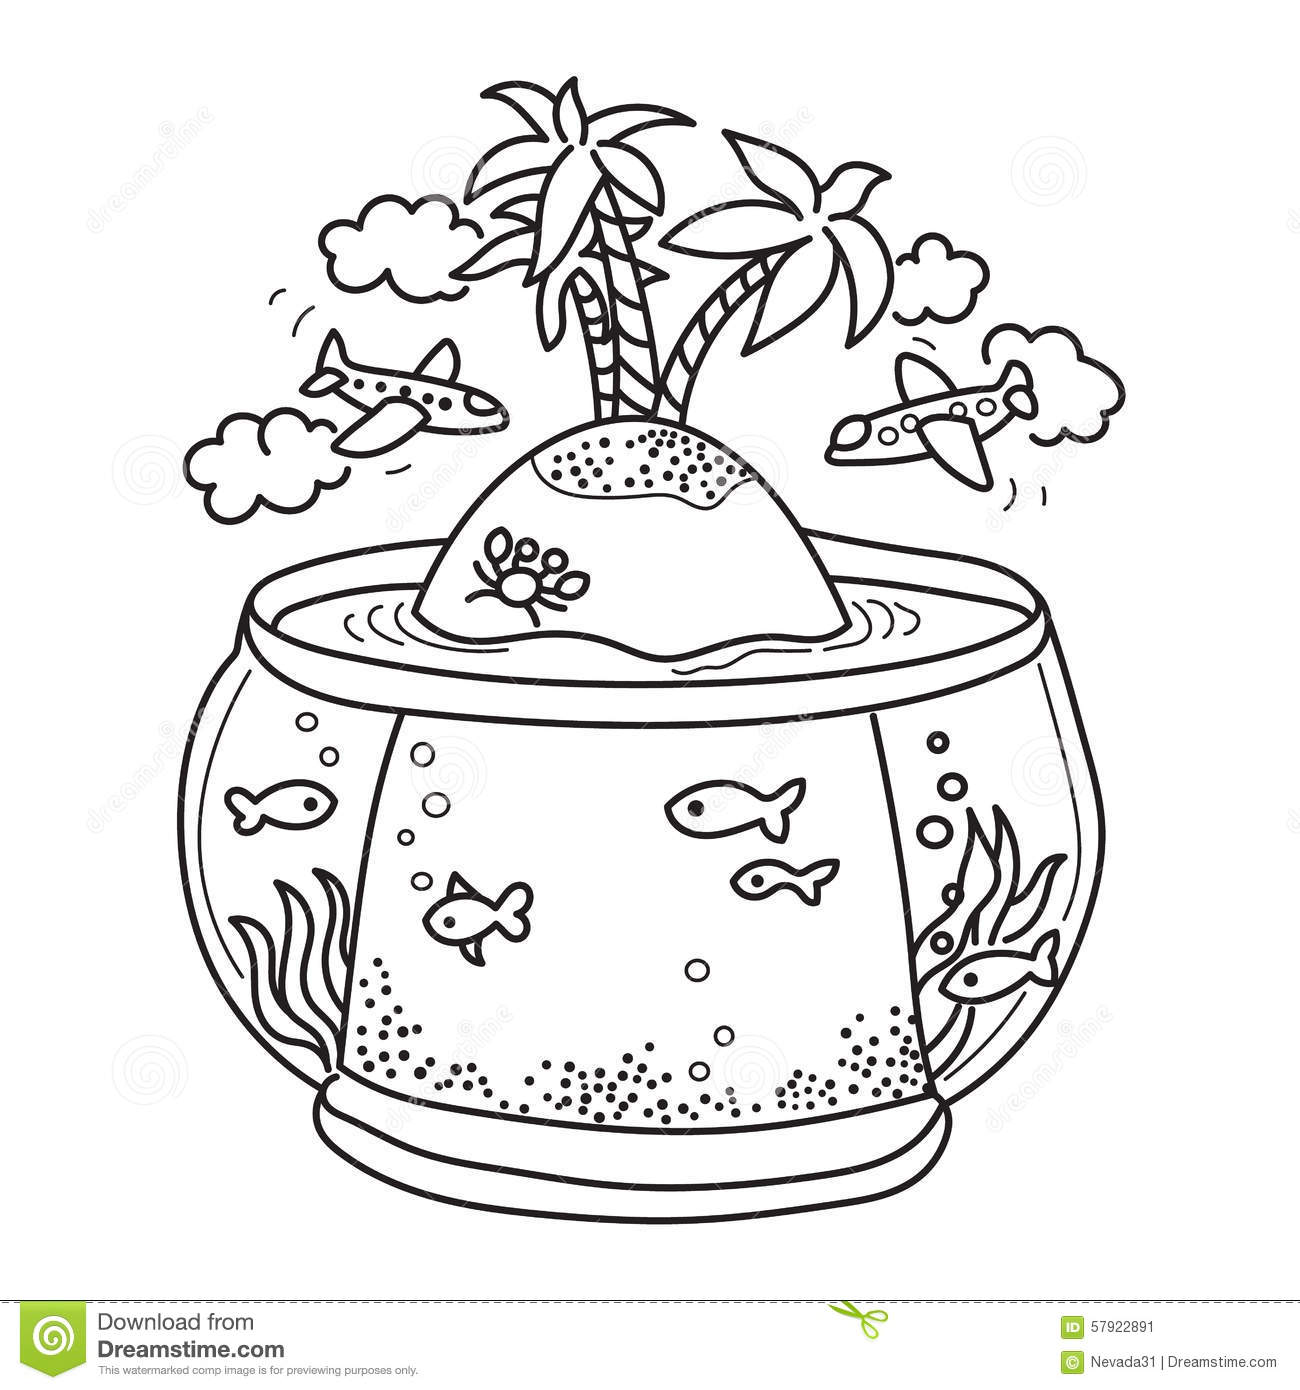 Fish tank drawing pictures - Paradise Island In Fish Tank